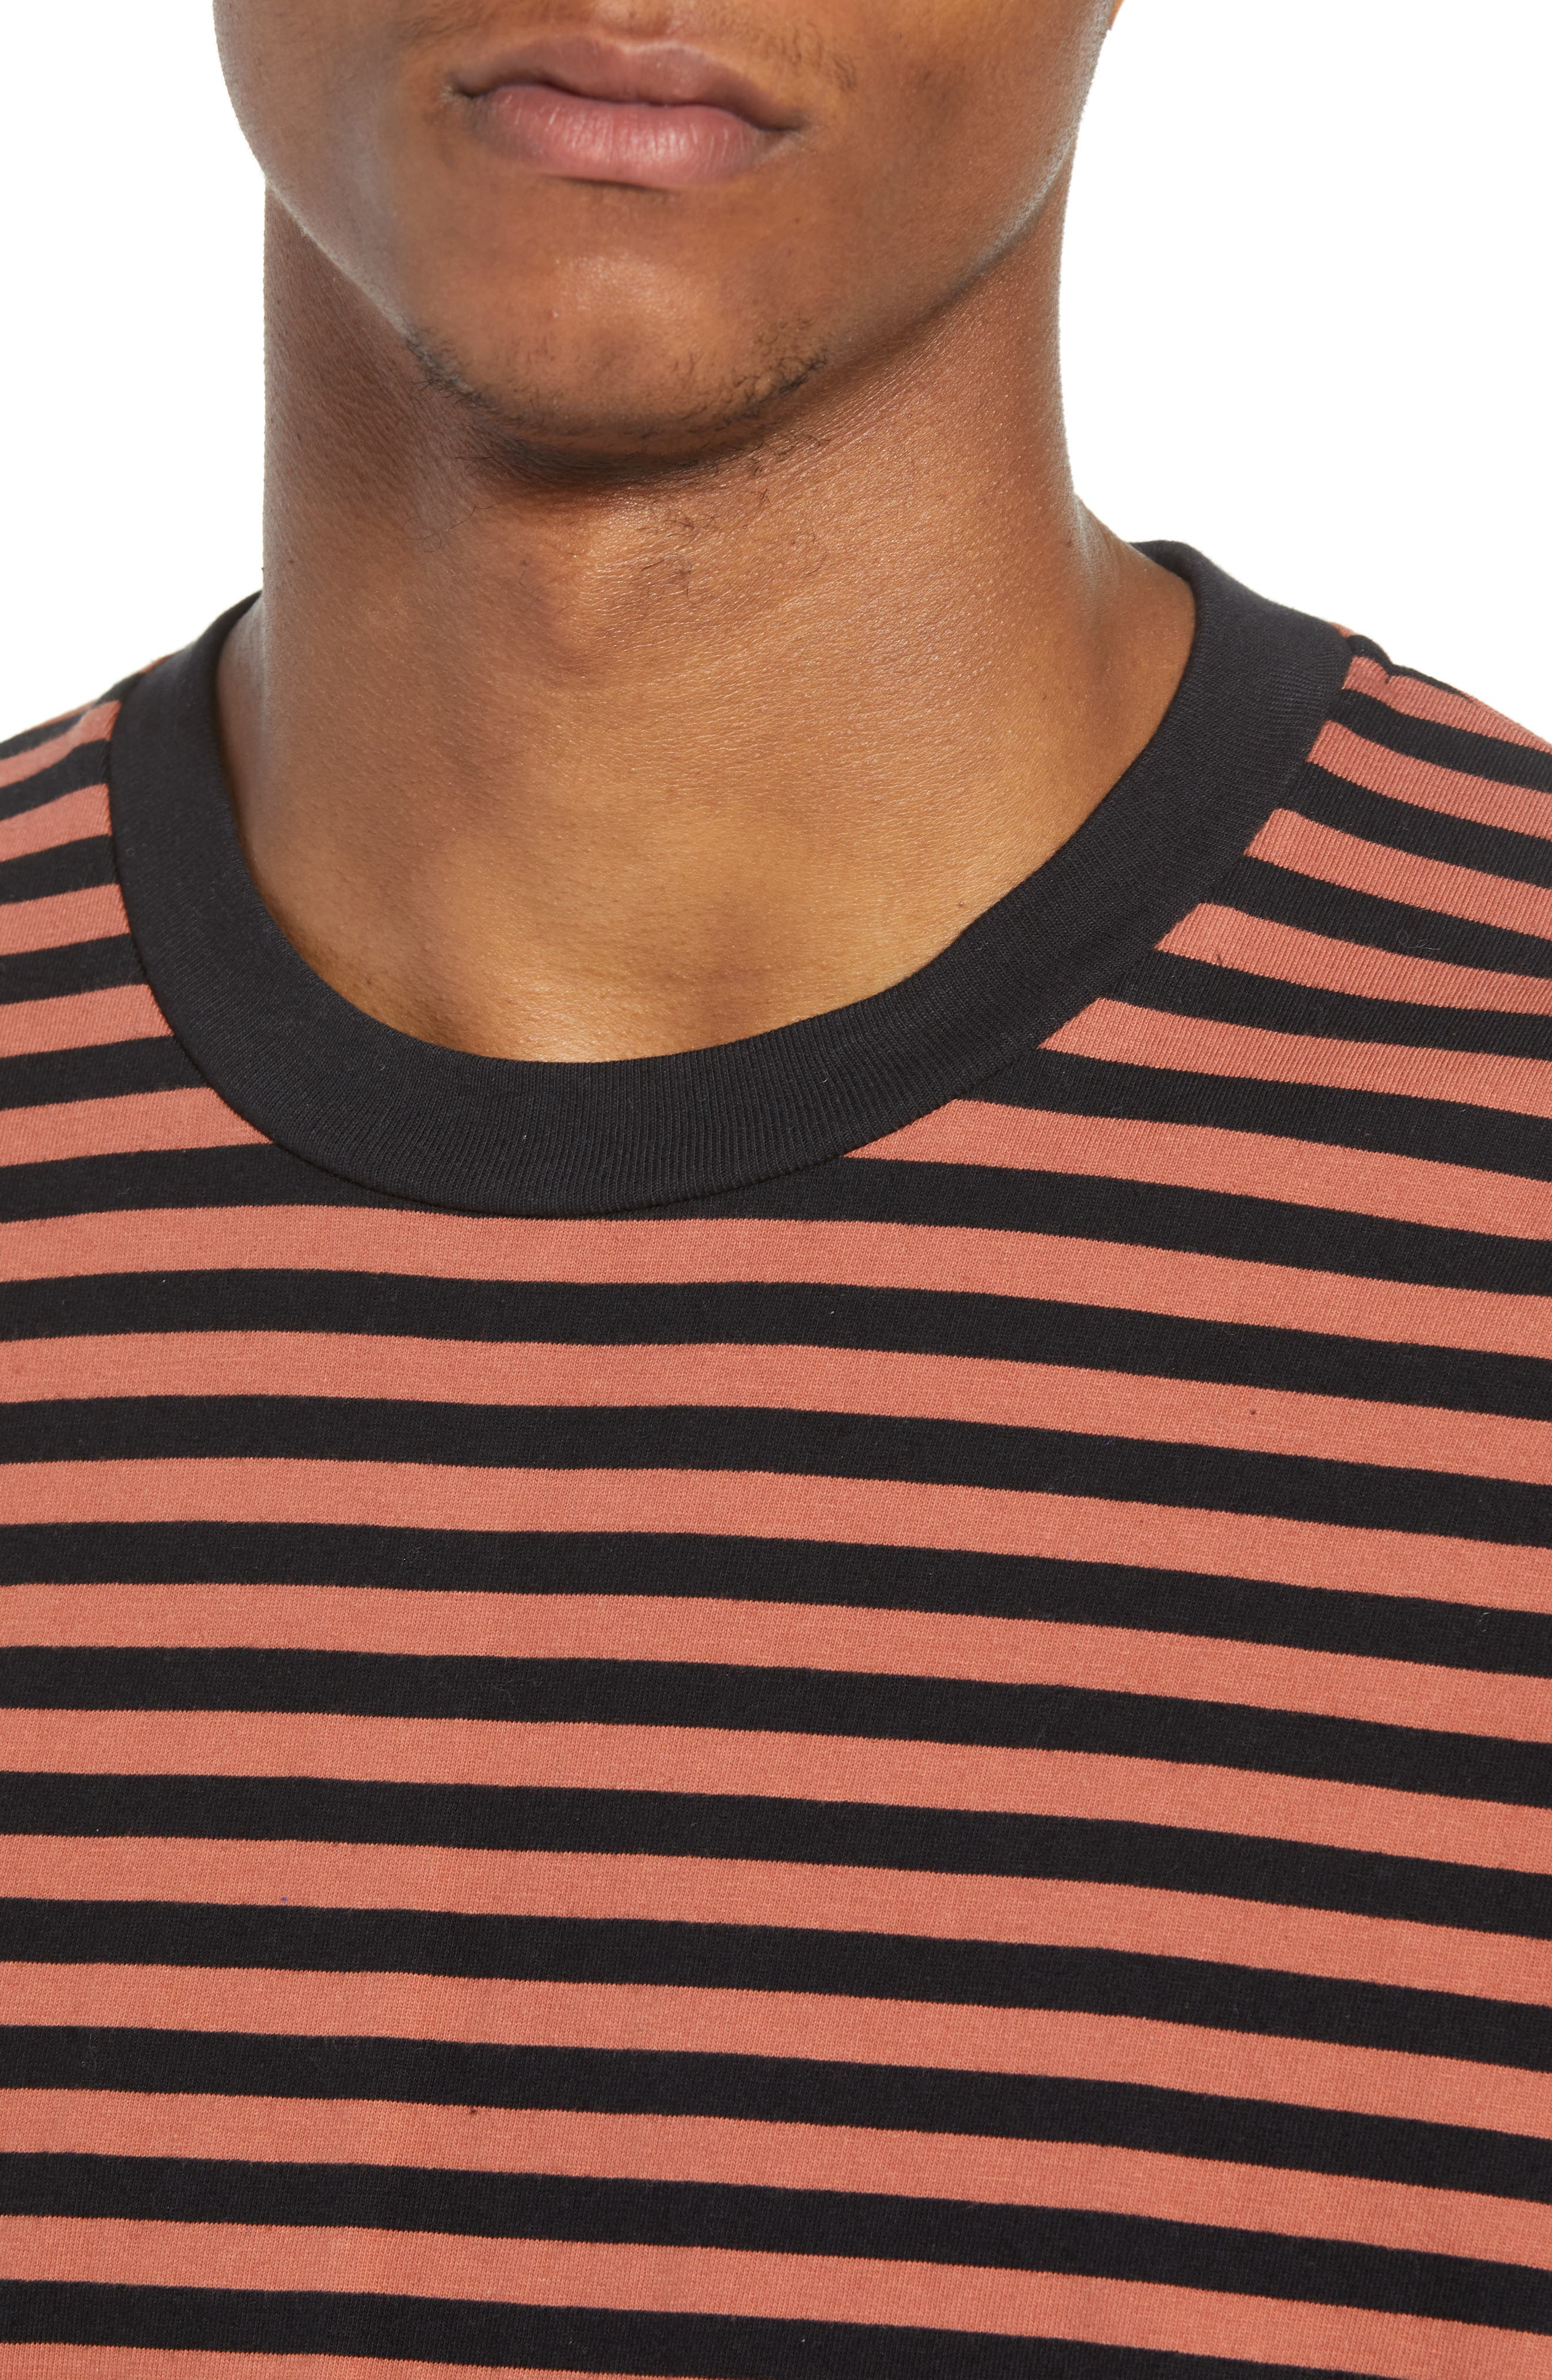 ZABEROBE Stripe Box T-Shirt,                             Alternate thumbnail 4, color,                             Bronze/ Black